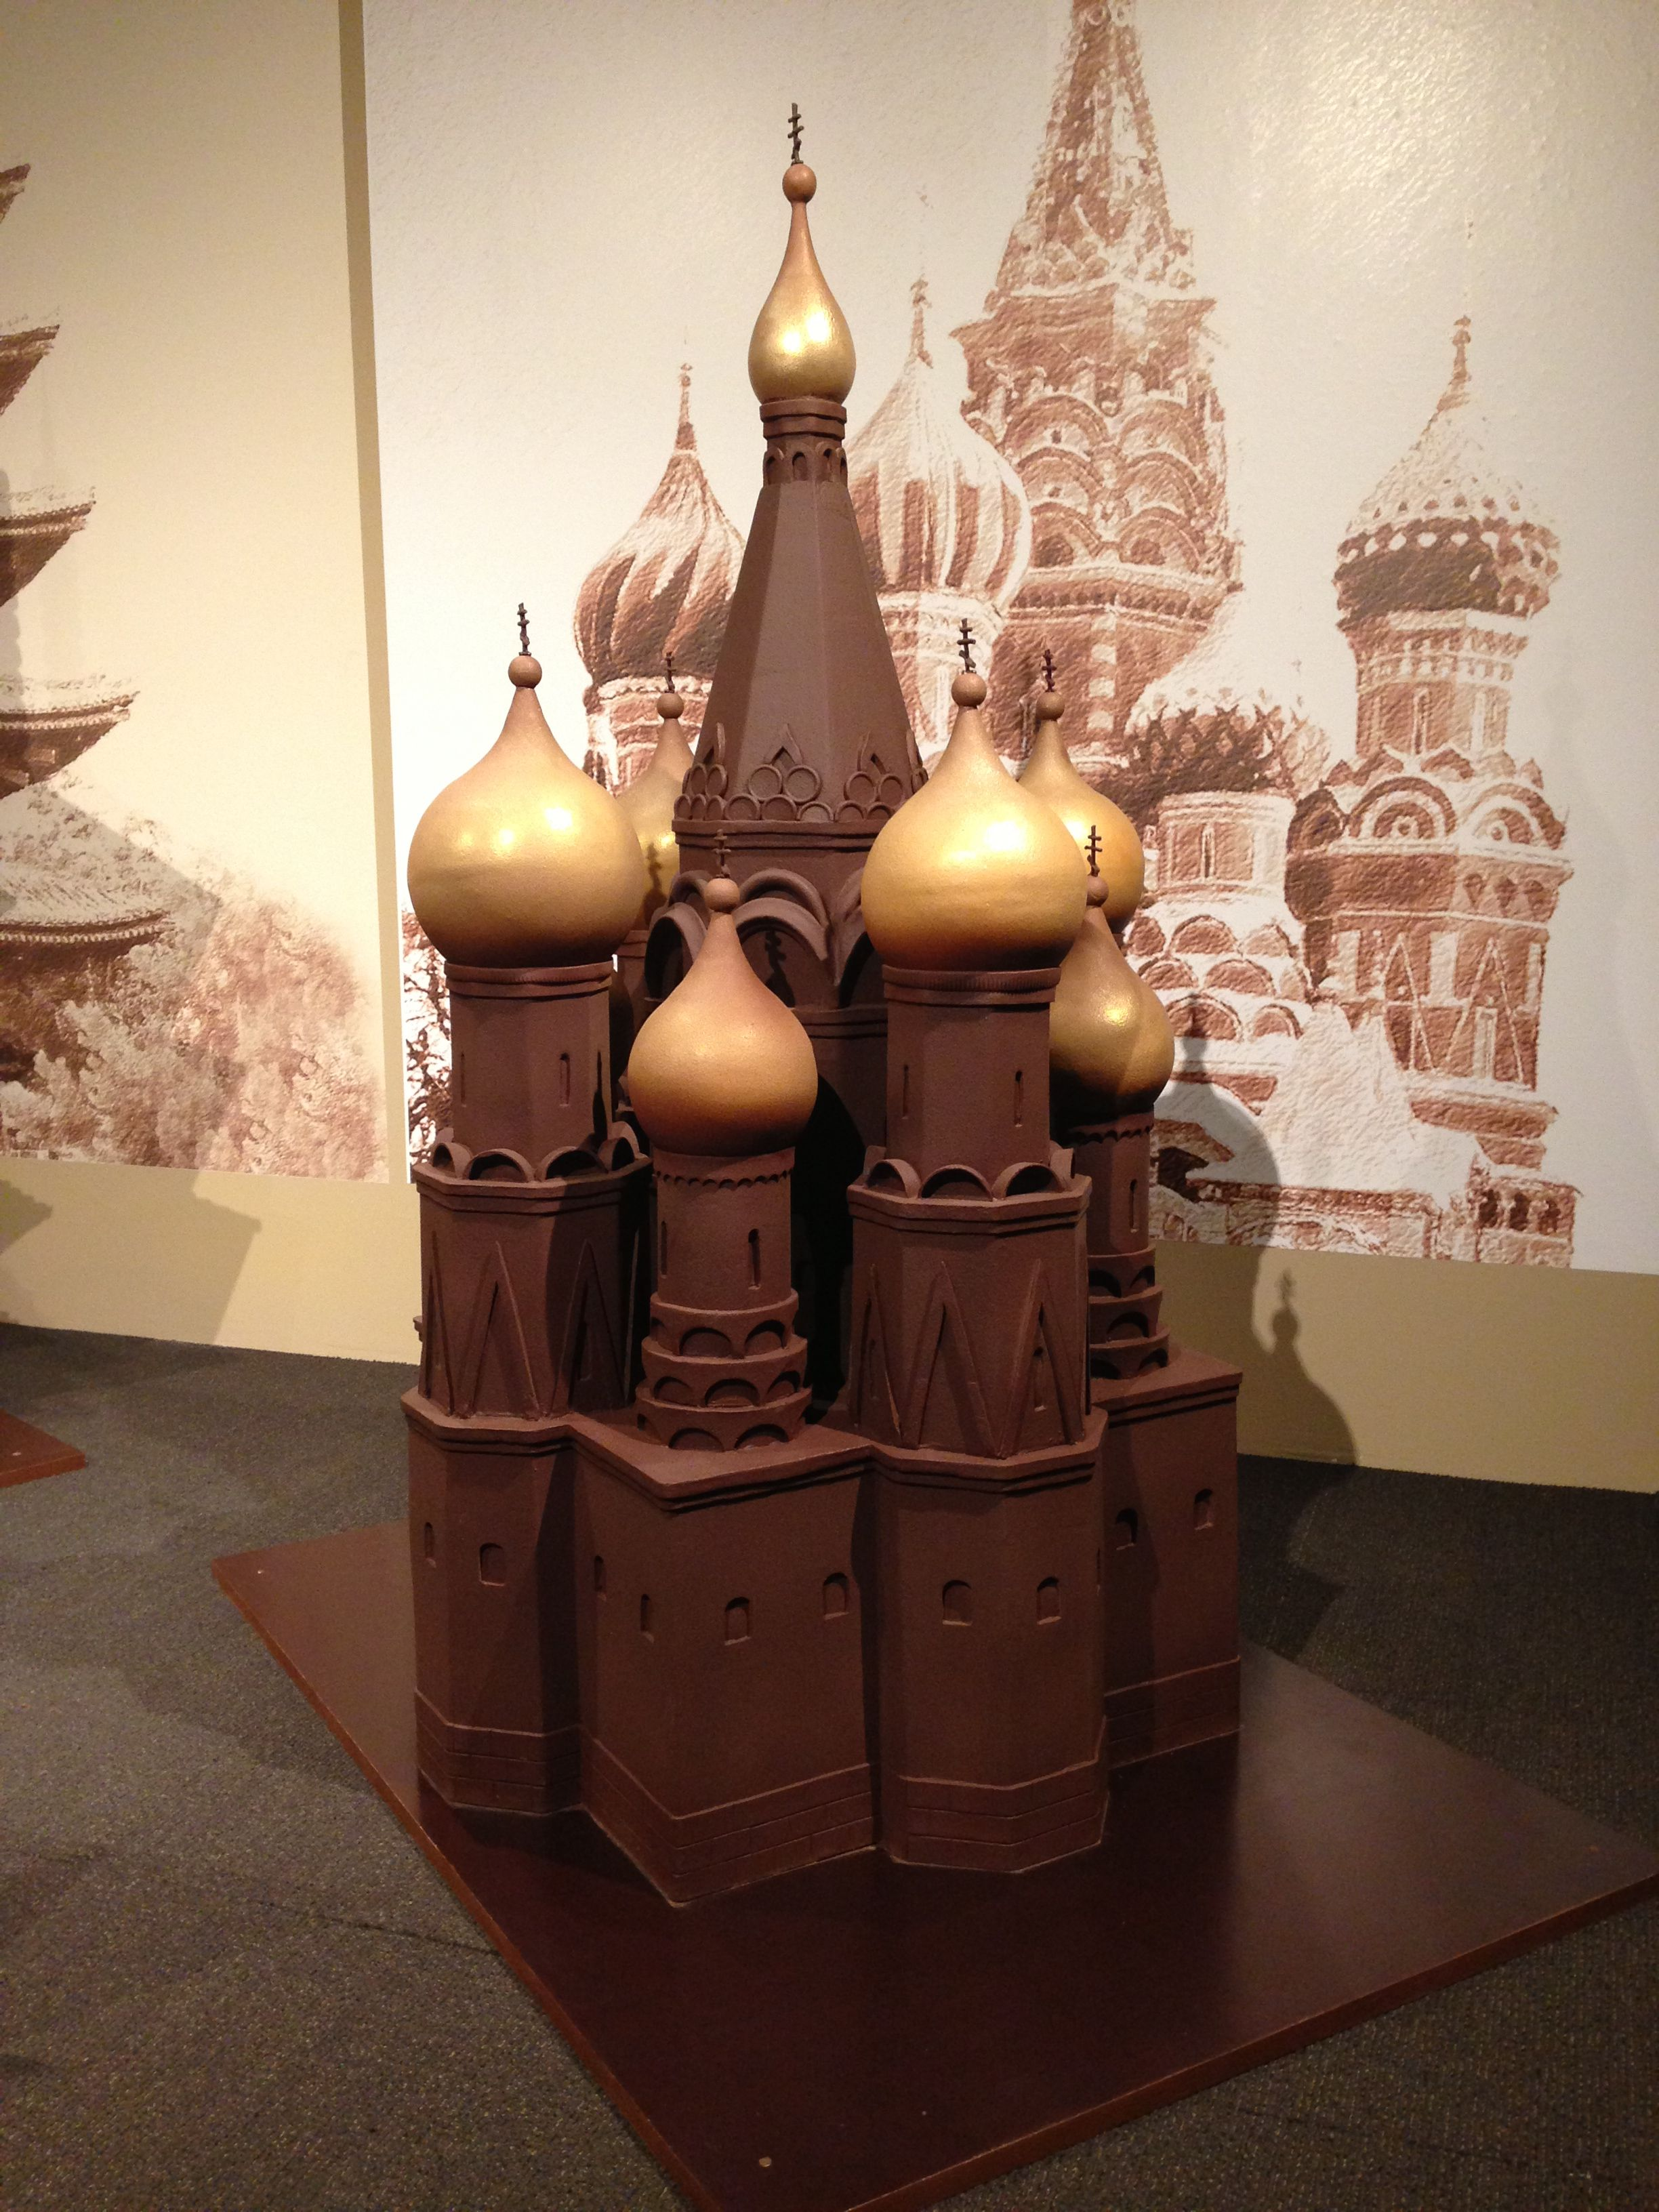 Made entirely of chocolate! #yummy